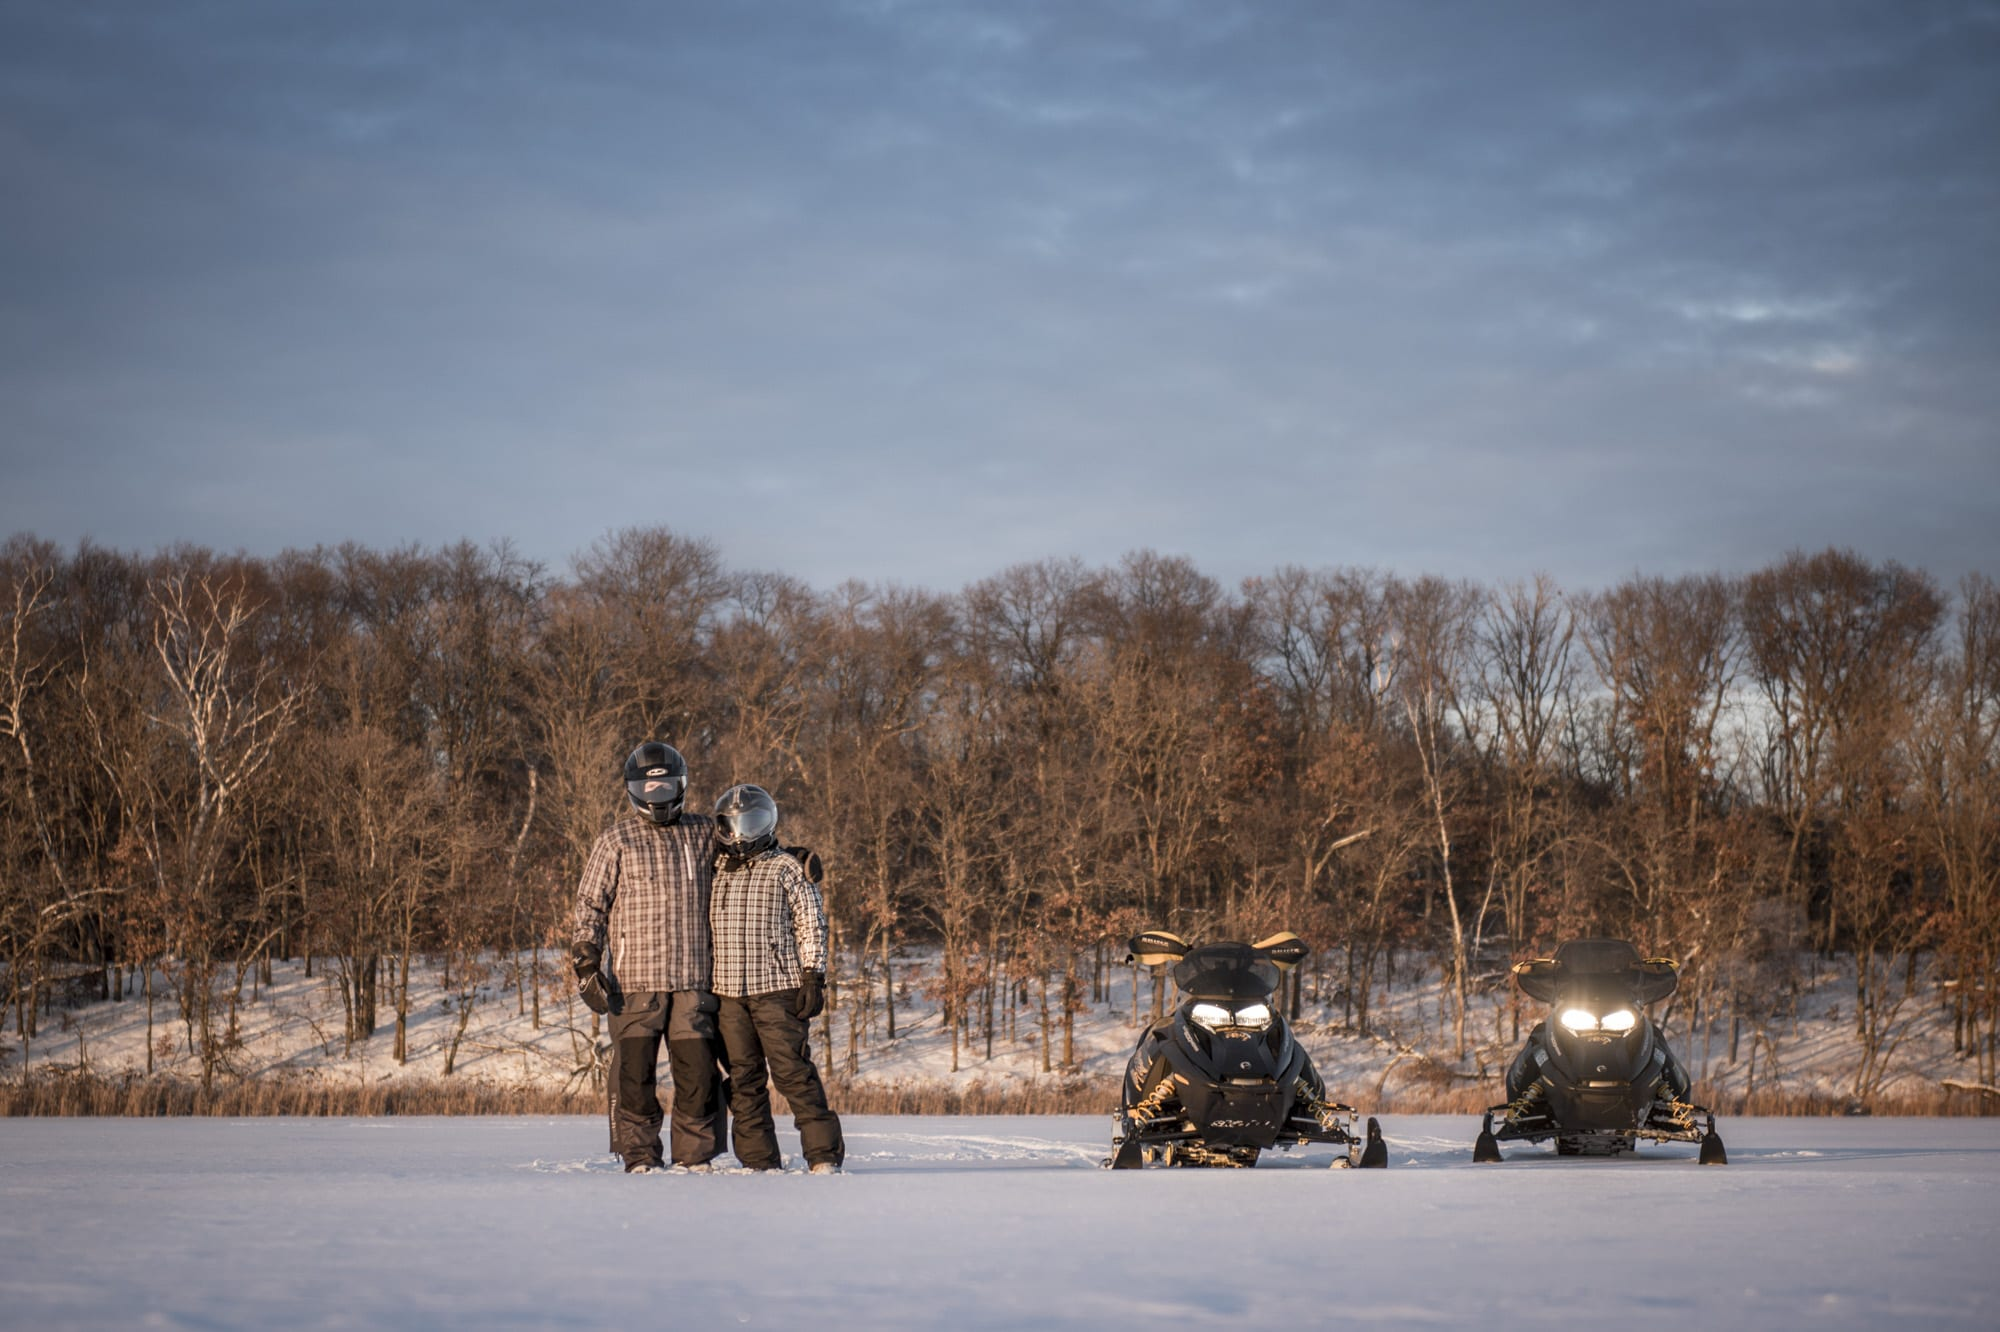 Two people posing on frozen lake near snowmobiles.